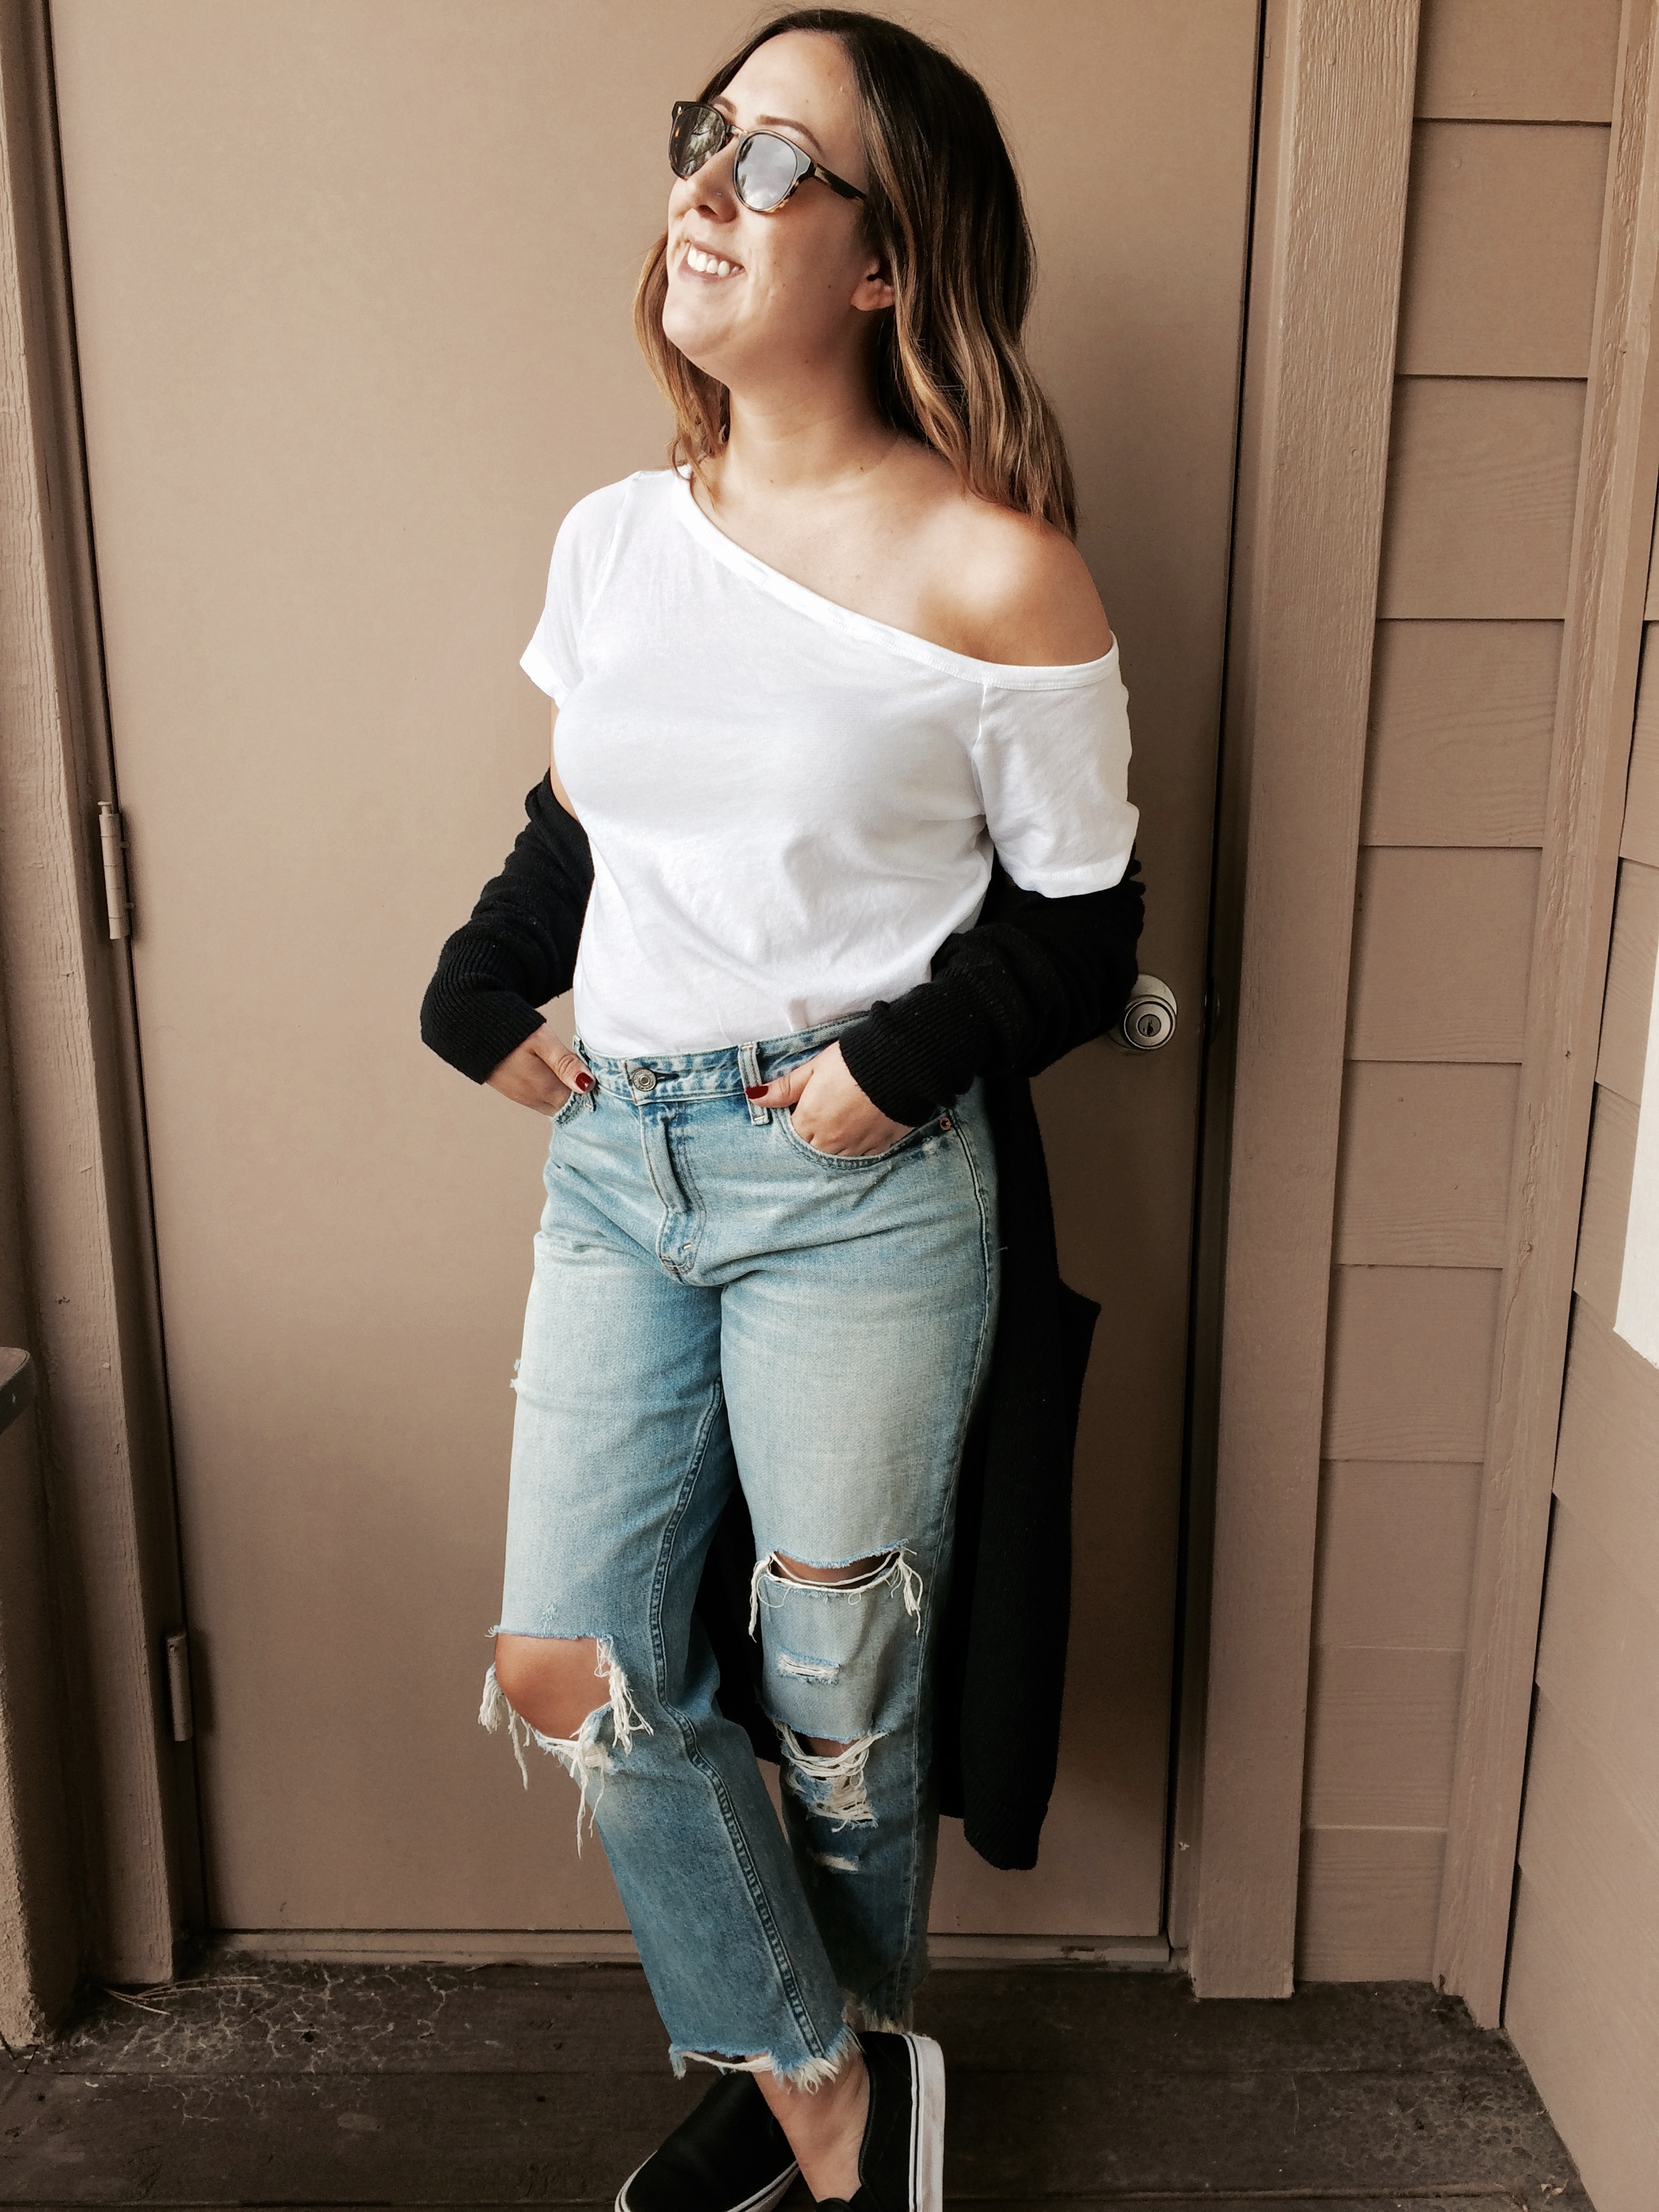 For my third look, I wanted something super casual that would be great for a day of running errands or hanging out. I paired my boyfriend jeans with a not so basic white tee, a long black cardigan and slip on sneakers!